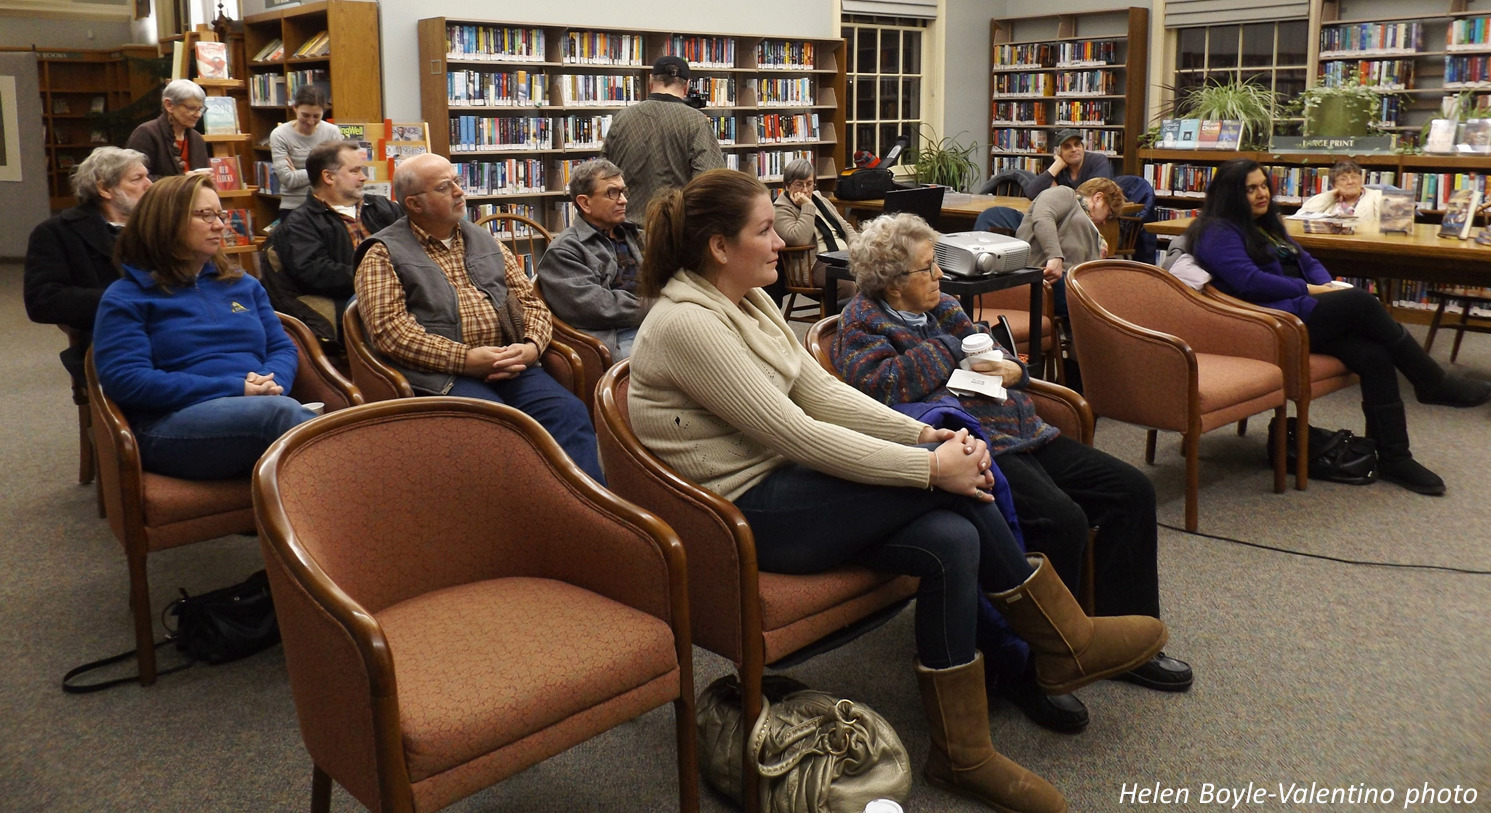 Local author shares book, story in library event